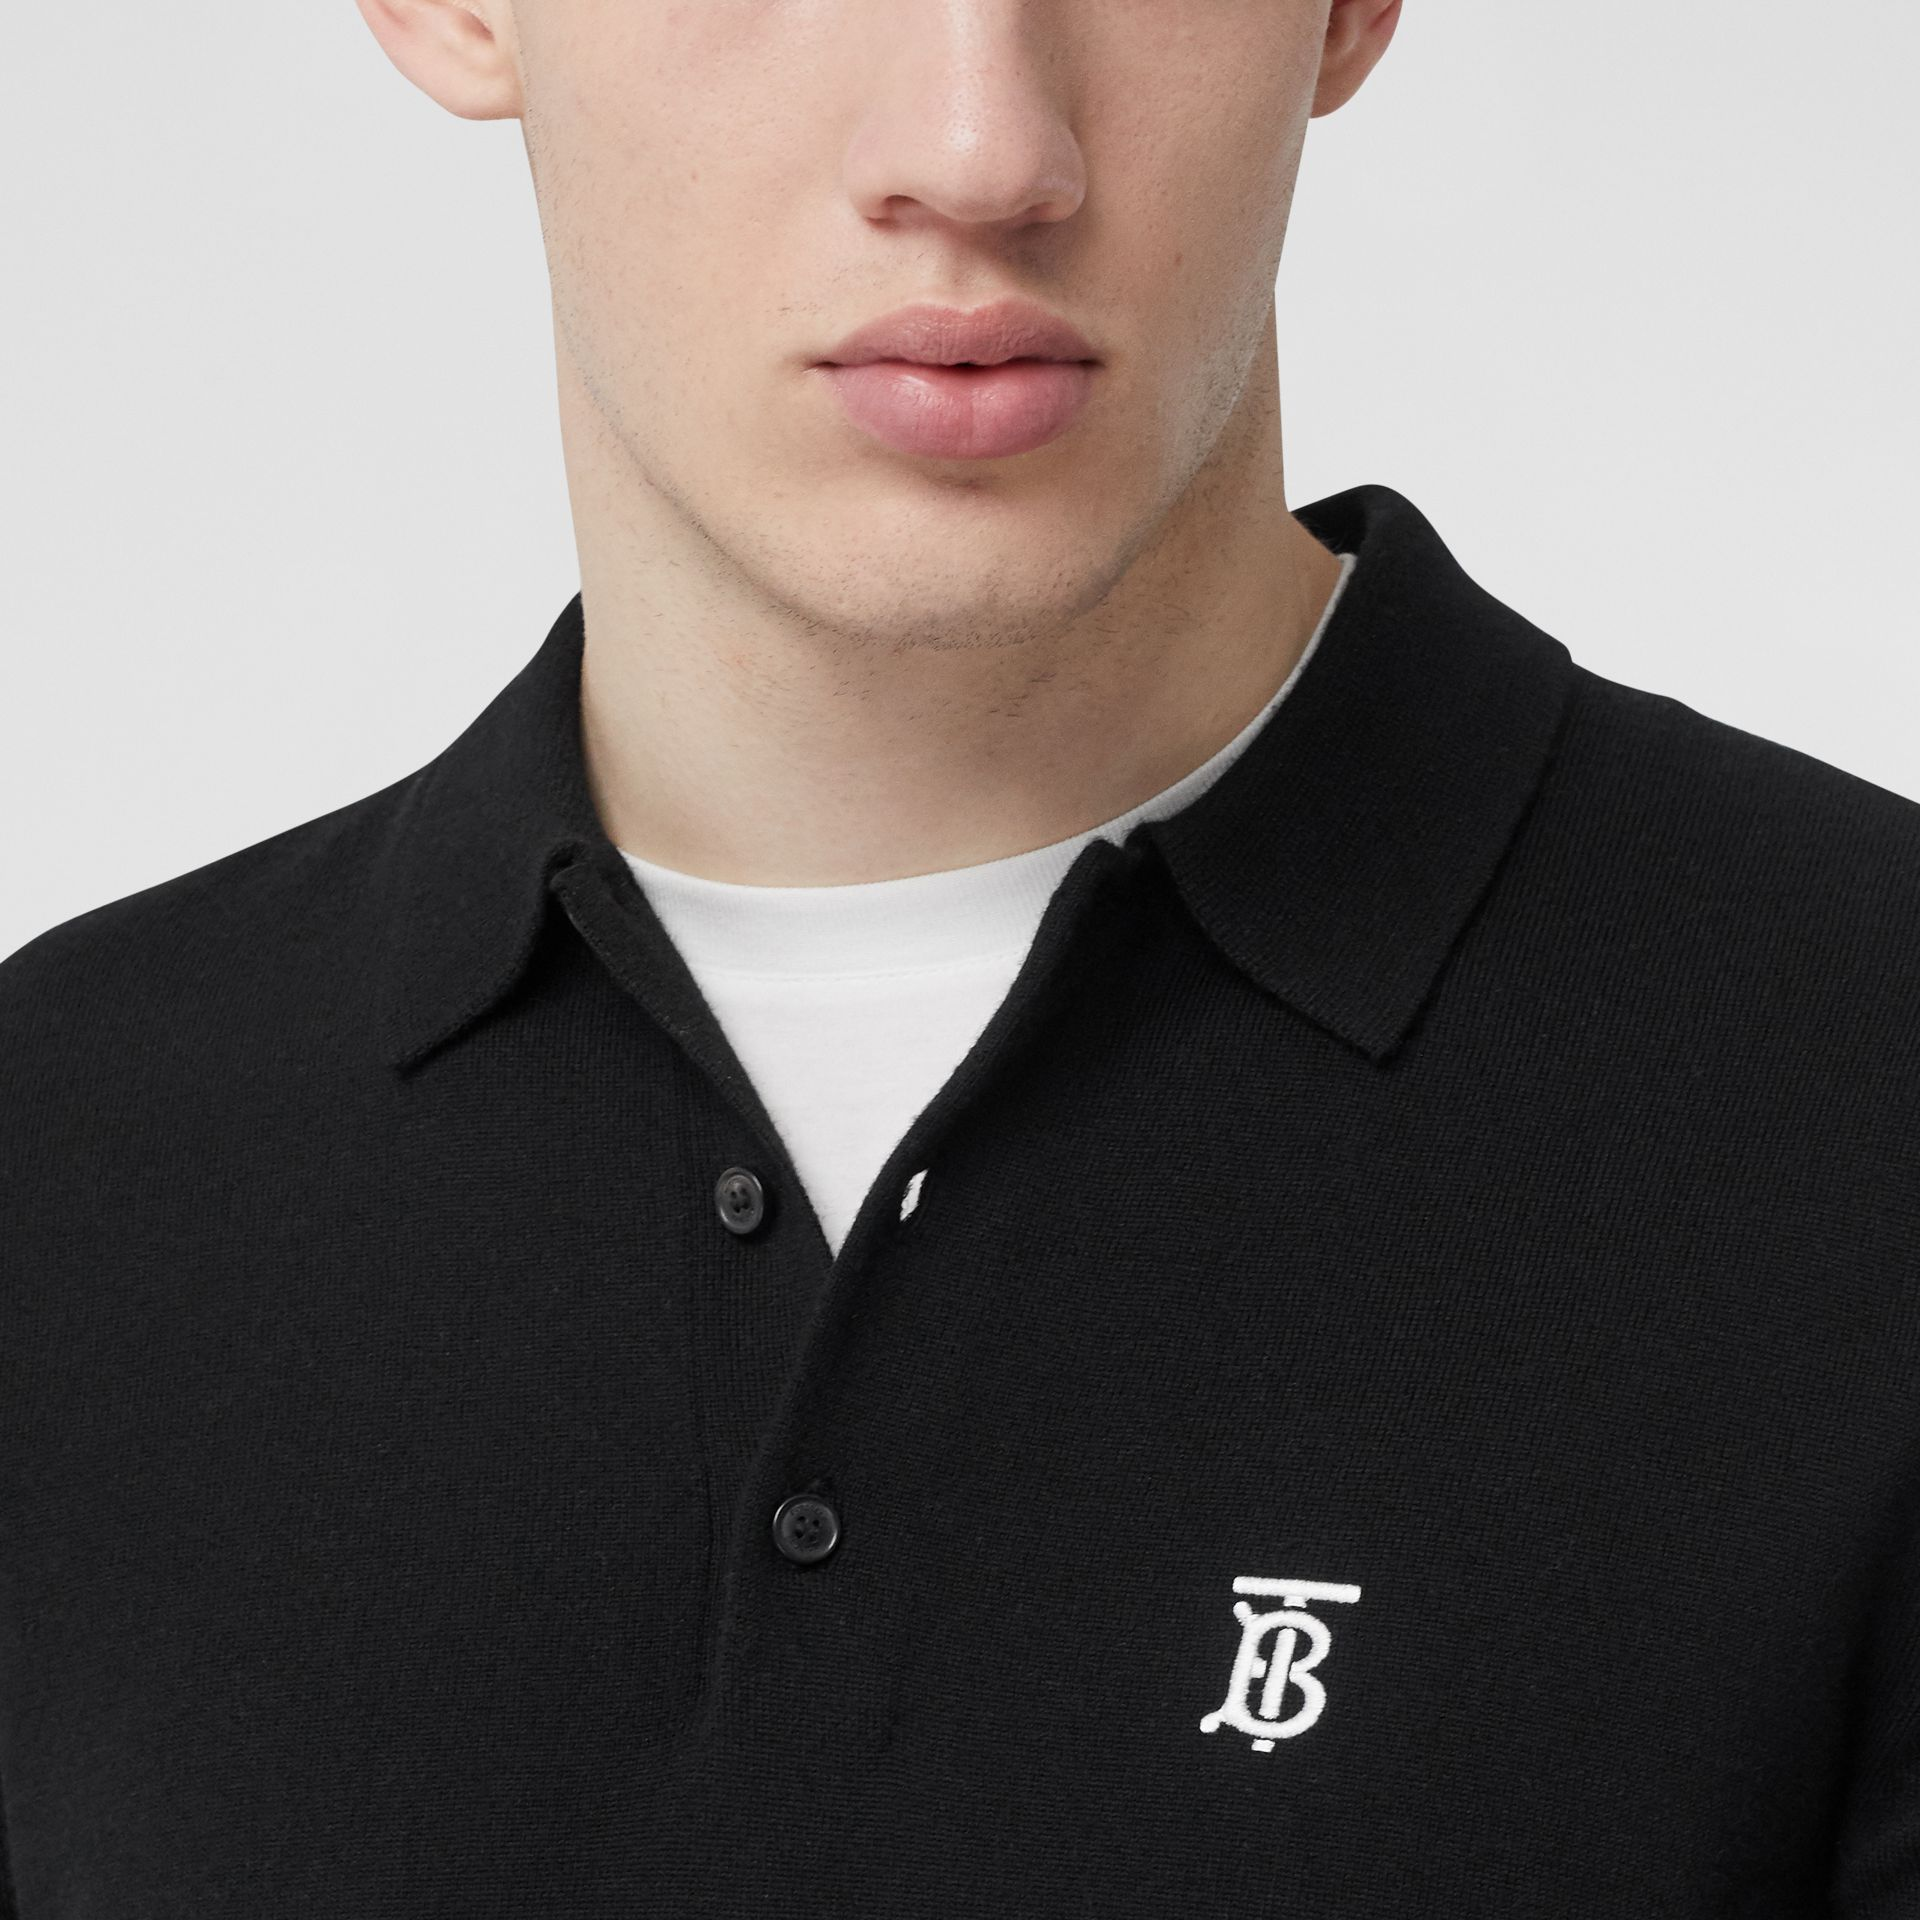 Long-sleeve Monogram Motif Merino Wool Polo Shirt in Black - Men | Burberry Singapore - gallery image 1